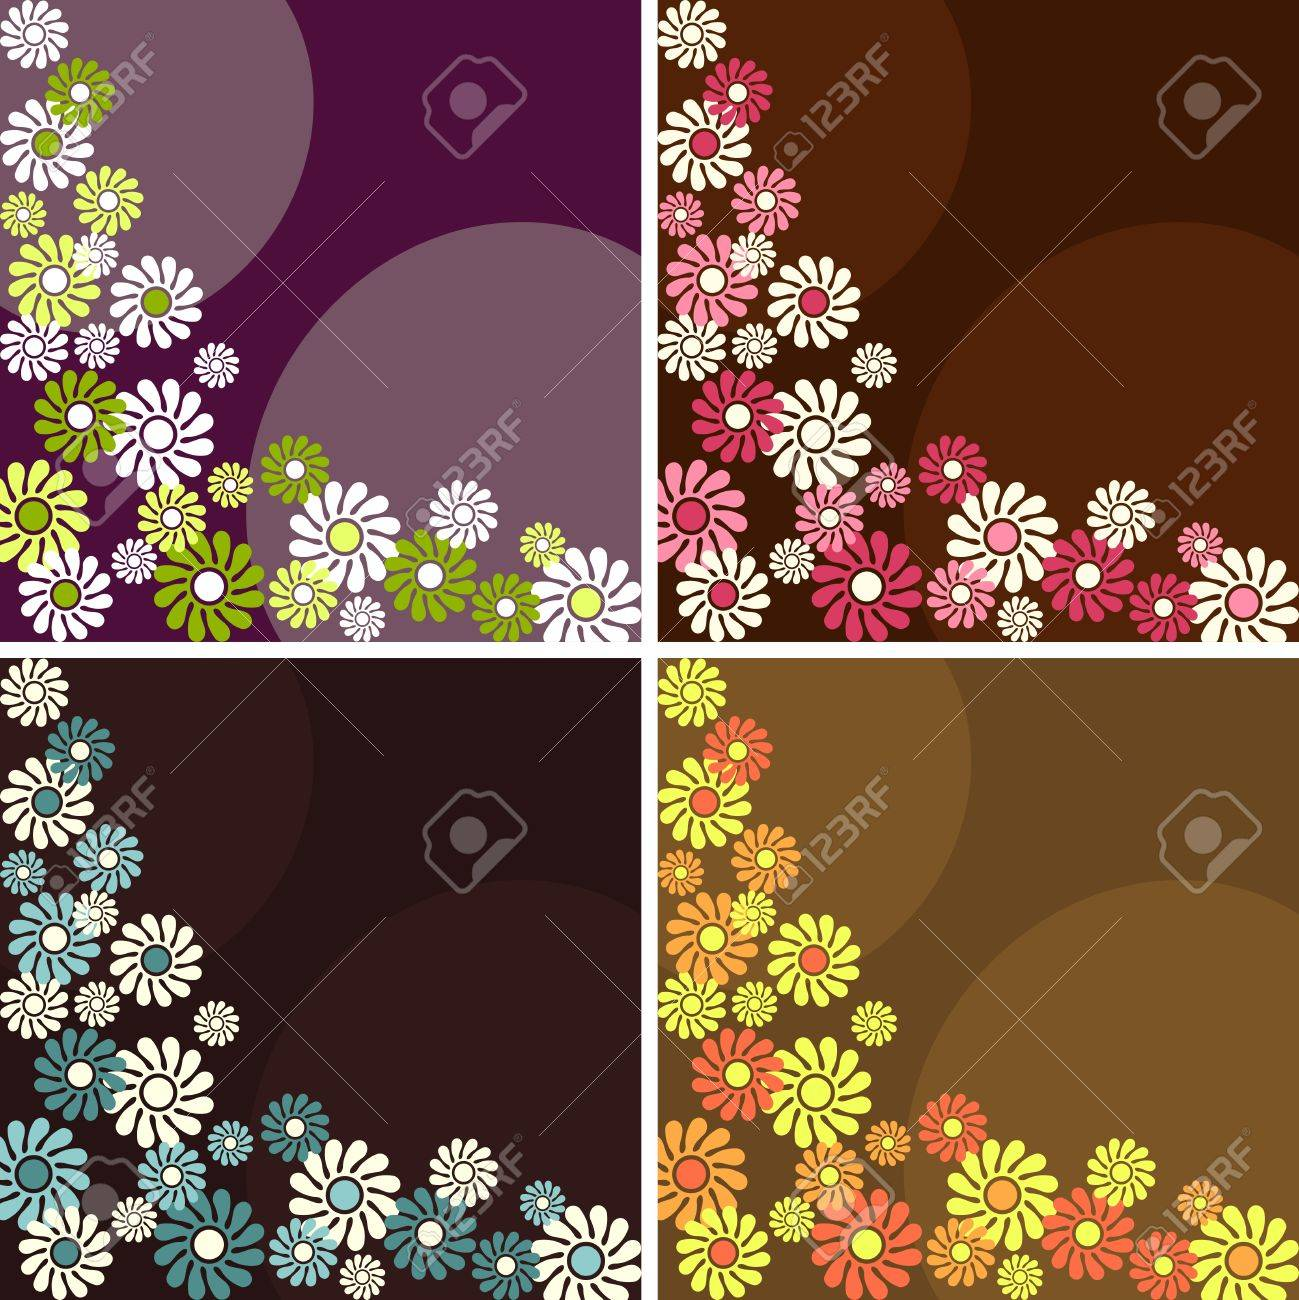 Four 1960's/1970's retro backgrounds in dark colors. The tiles can be combined seamlessly. Graphics are grouped and in several layers for easy editing. The file can be scaled to any size. Stock Vector - 7949638